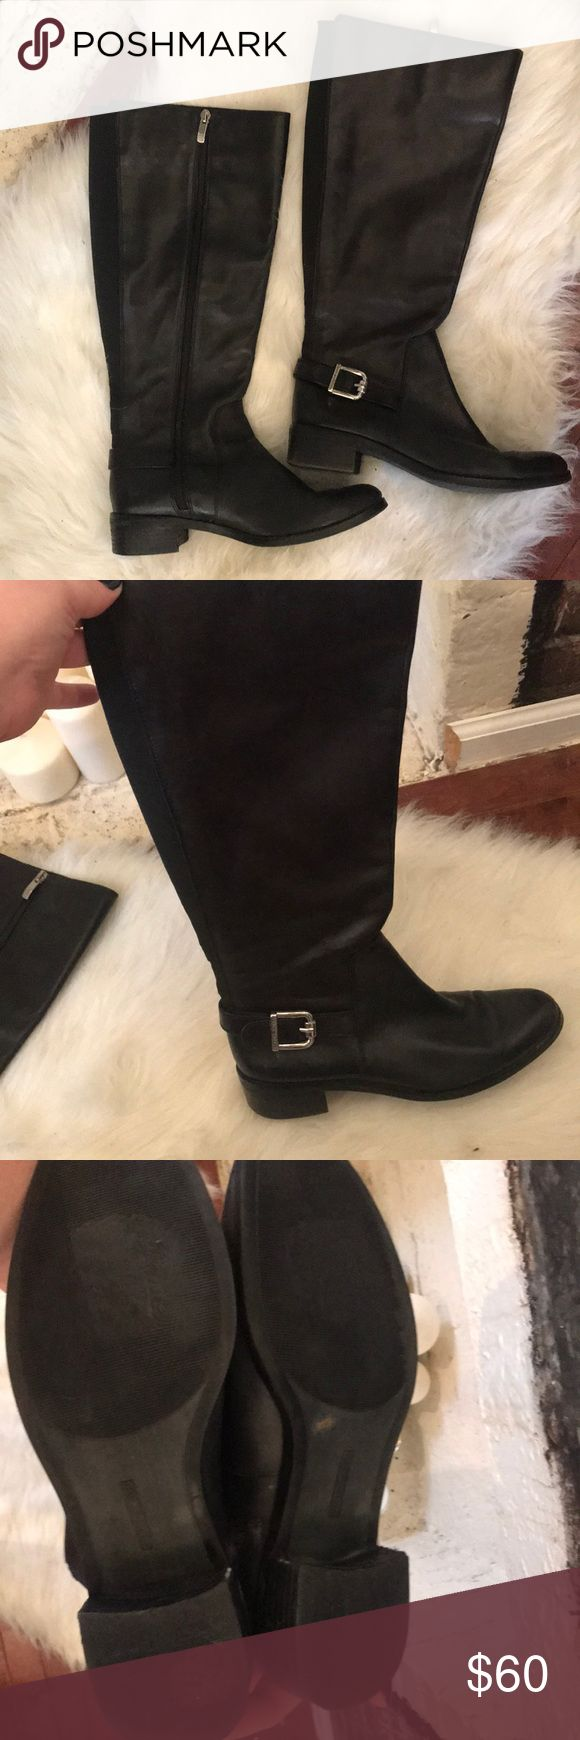 Vince Camuto wide calf black riding boots Black riding